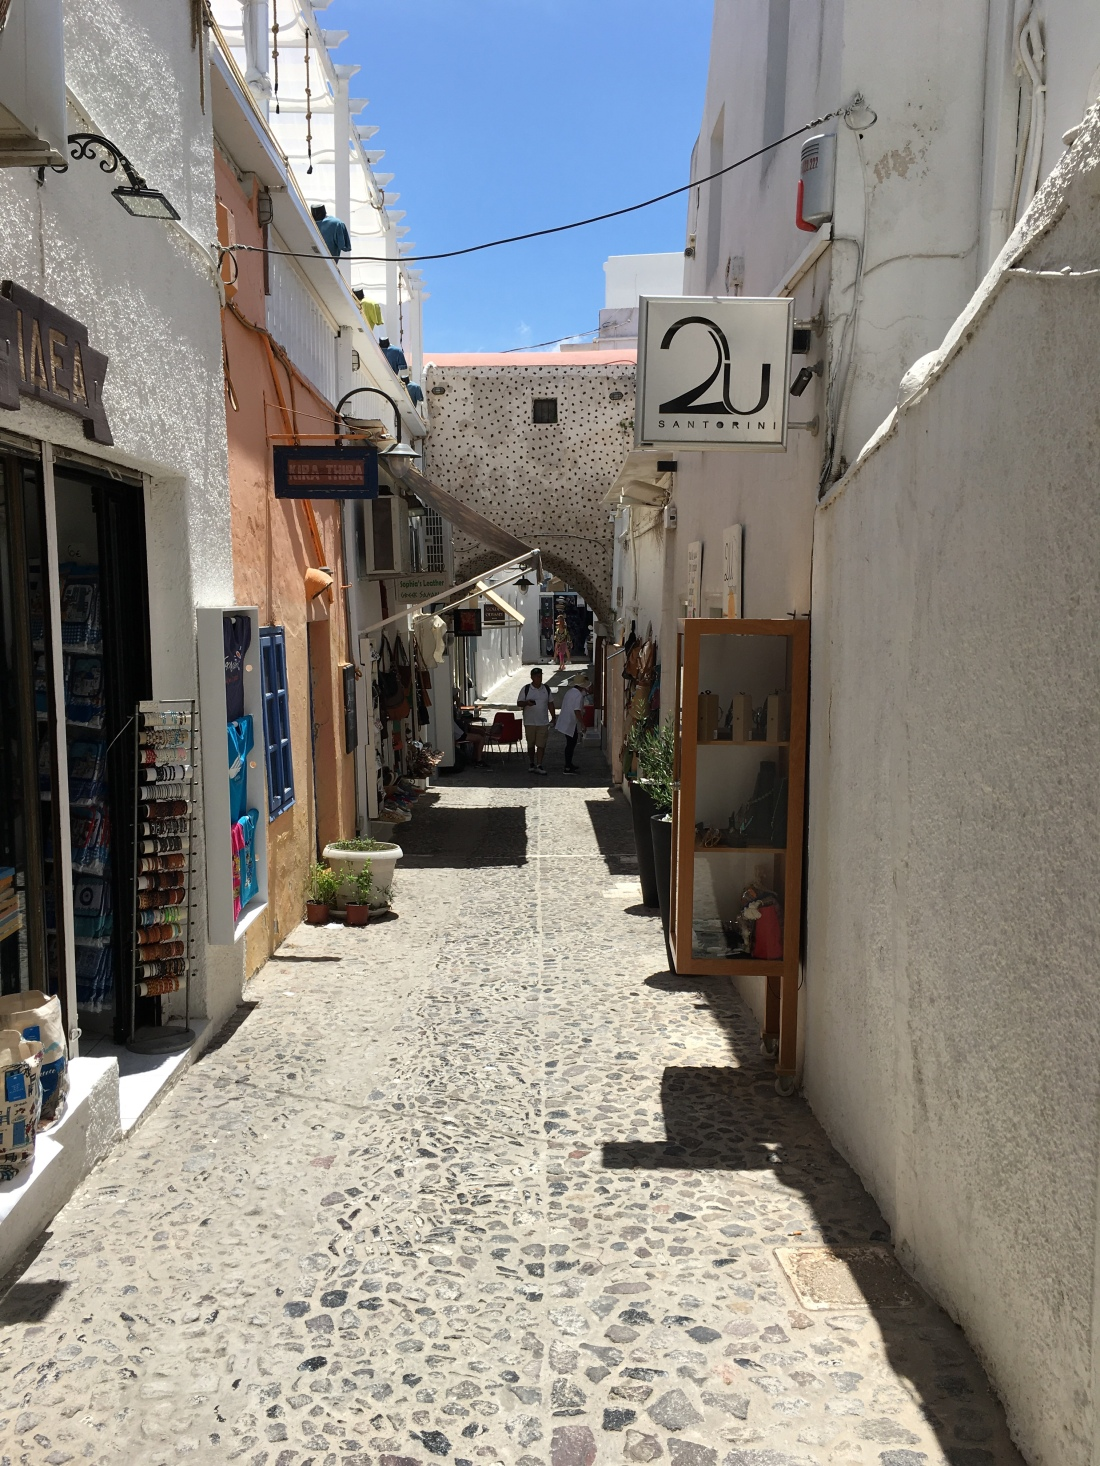 Shopping street in Firi, Santorini. Brownell. 2019